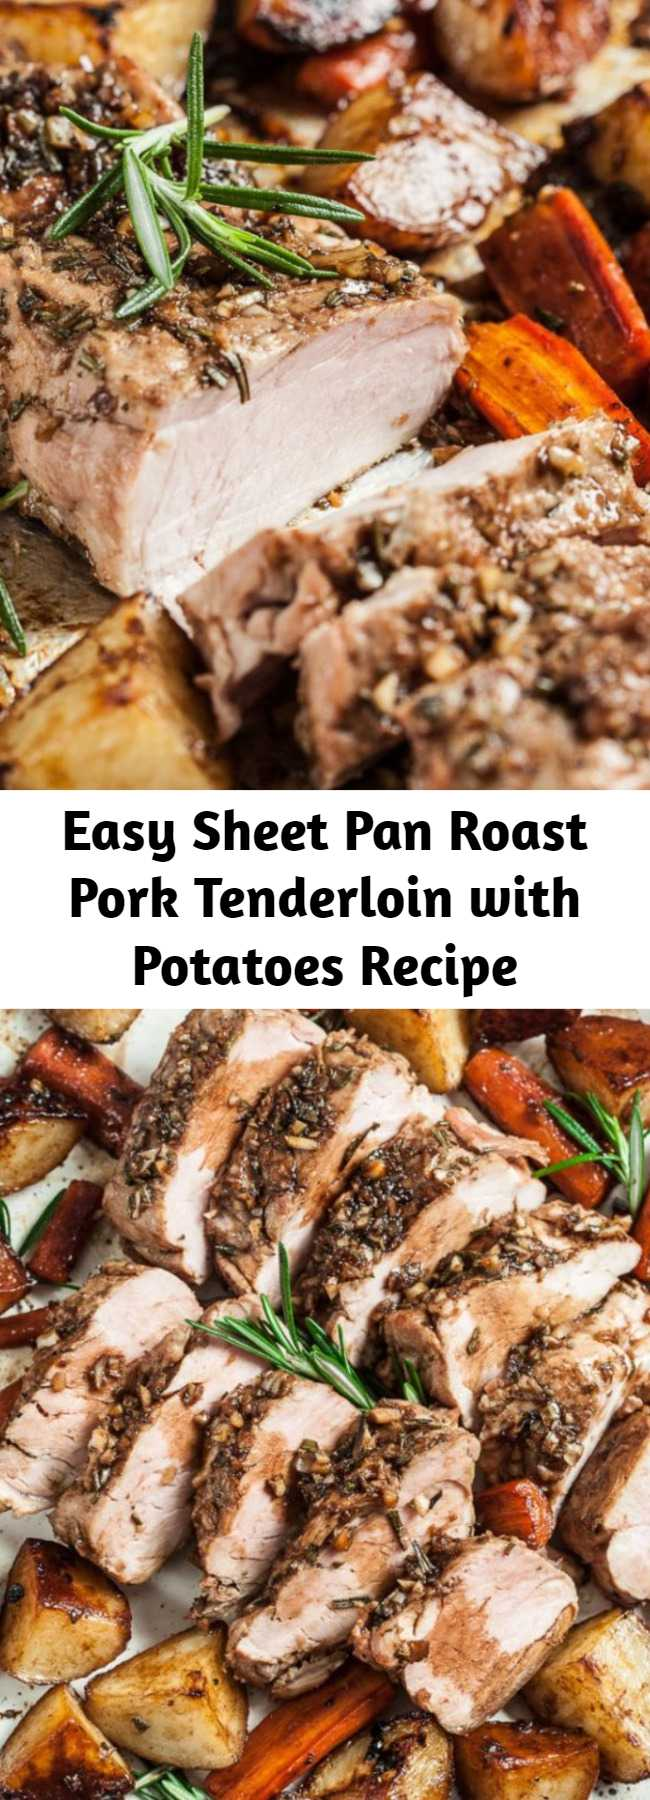 Easy Sheet Pan Roast Pork Tenderloin with Potatoes Recipe - This Sheet Pan Roast Pork Tenderloin with Potatoes is extremely tender, succulent, and healthy. This pork tenderloin recipe is easy enough for a weeknight meal and delicious enough for serving to guests. Little effort with big results.